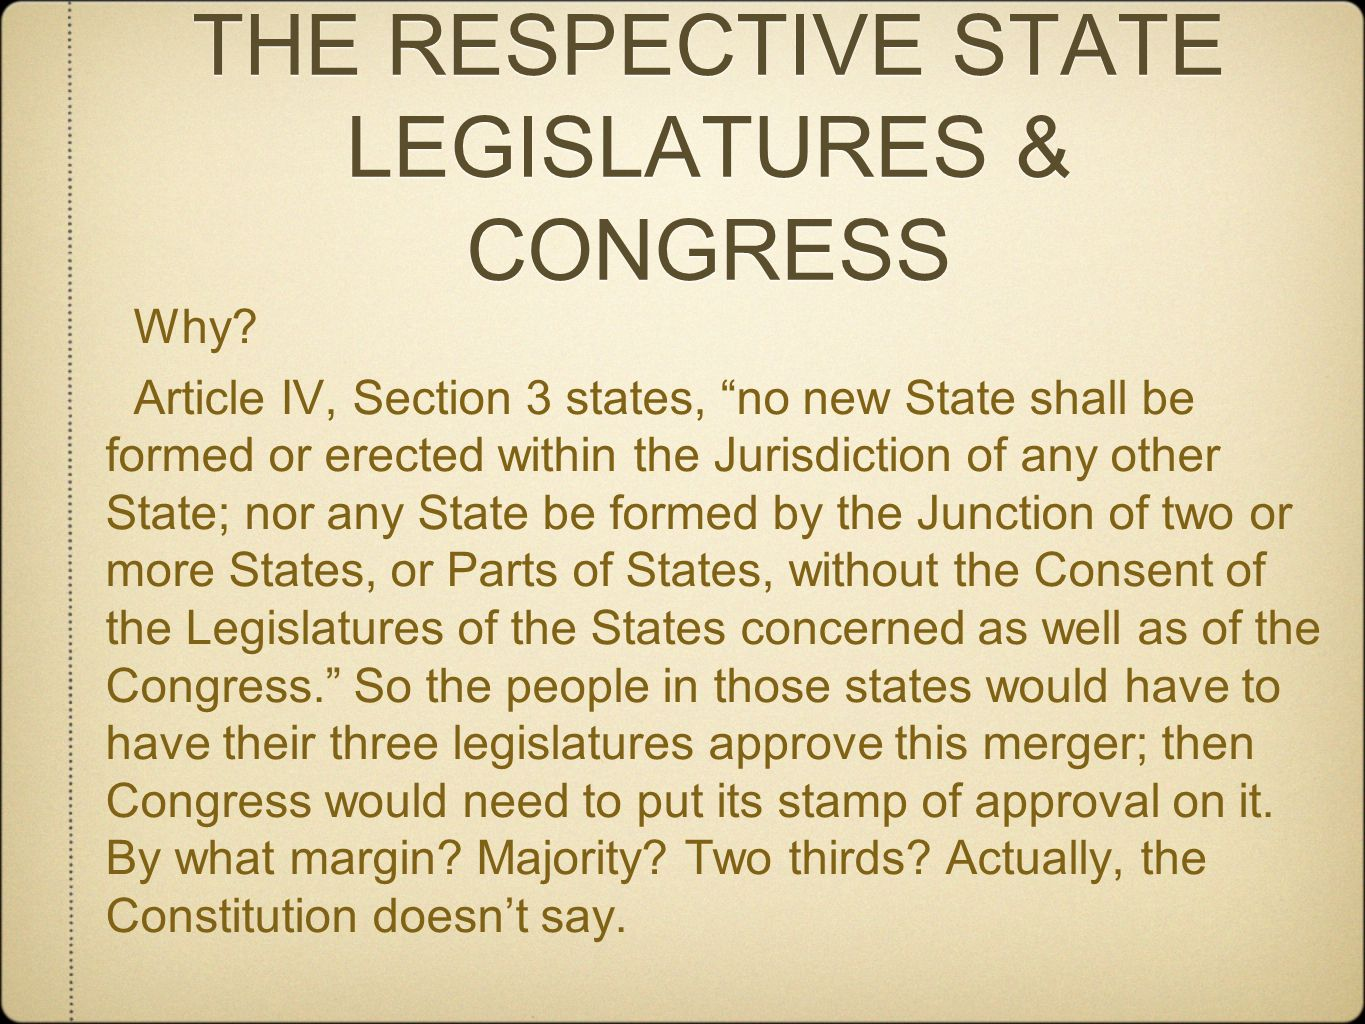 THE RESPECTIVE STATE LEGISLATURES & CONGRESS